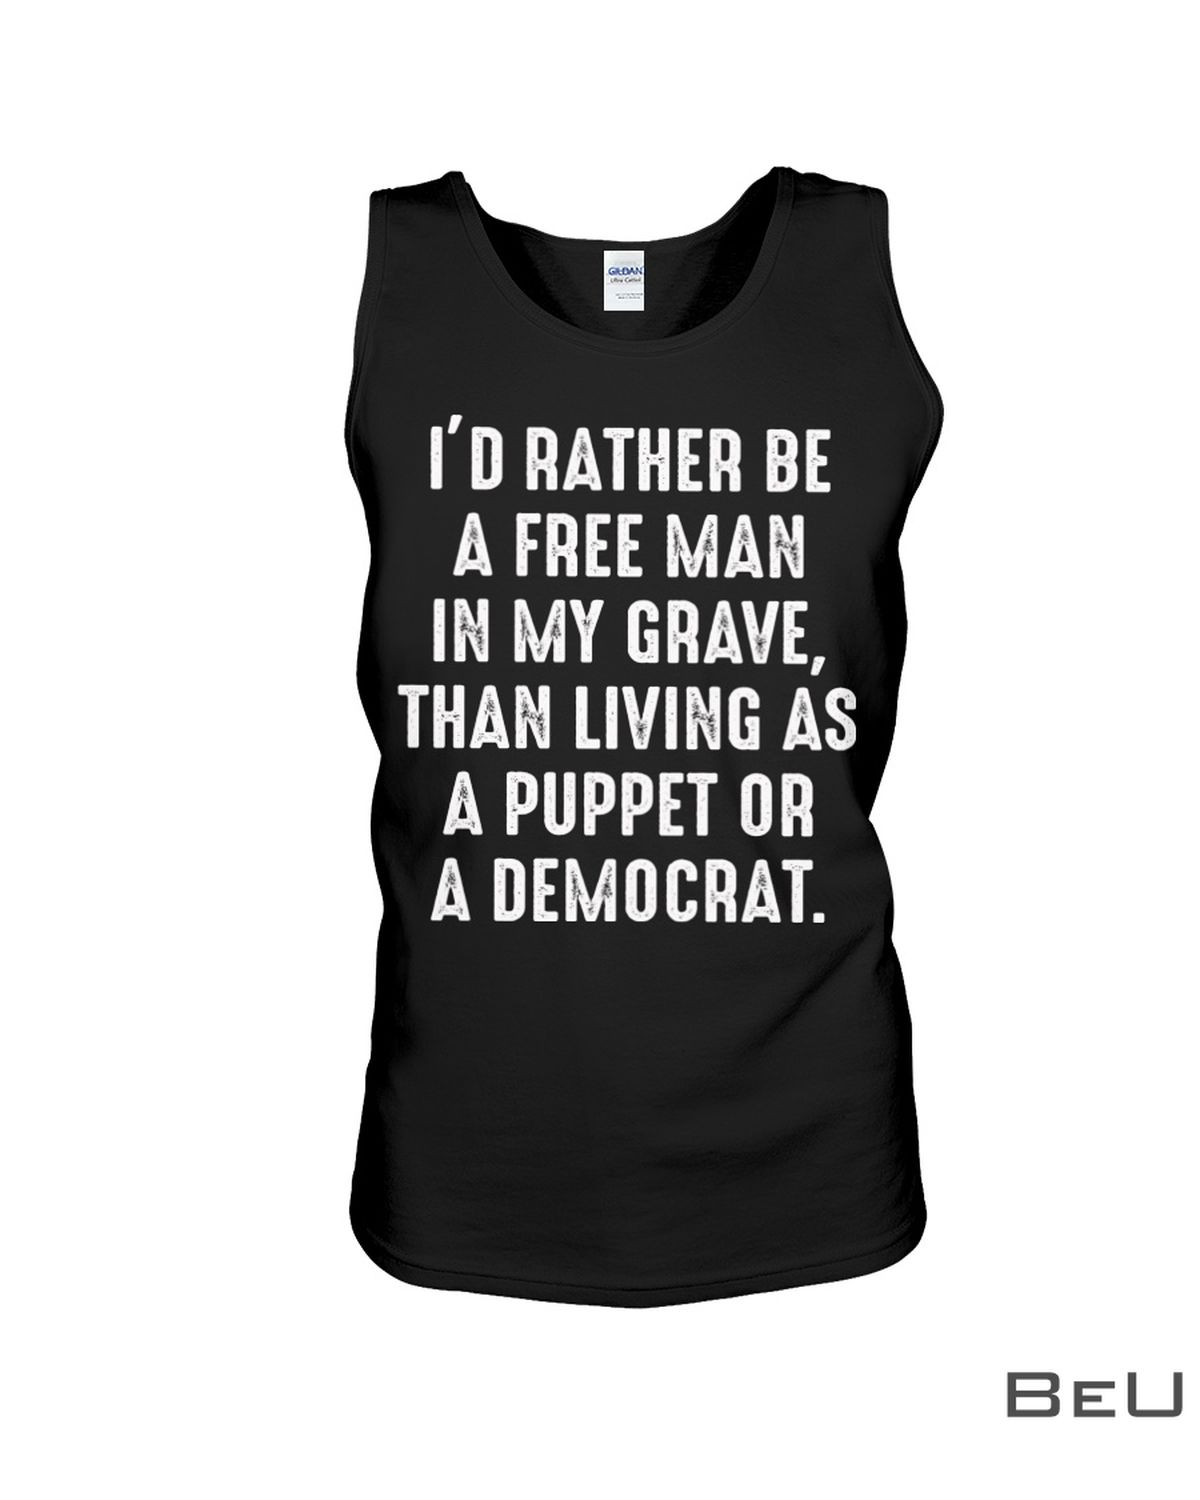 I'd Rather Be A Free Man In My Grave Than Living As A Puppet Or A Democrat Shirtc